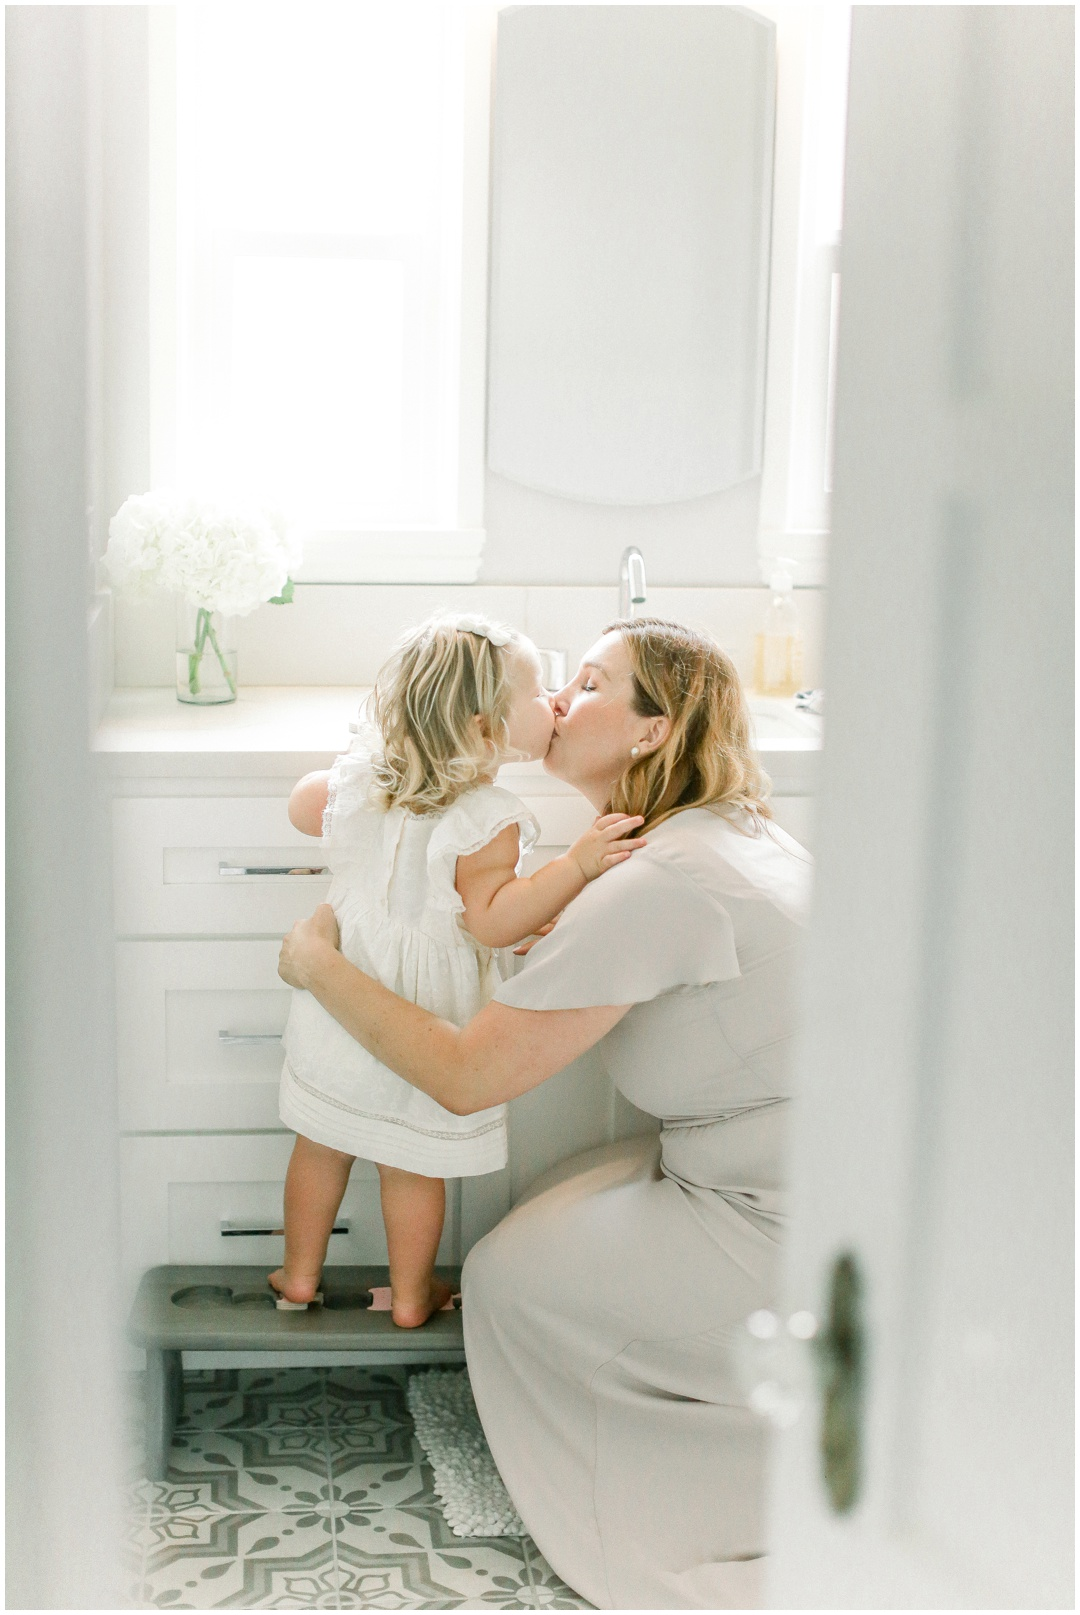 Newport_Beach_Newborn_Light_Airy_Natural_Photographer_Newport_Beach_Photographer_Orange_County_Family_Photographer_Cori_Kleckner_Photography_Newport_Beach_Photographer_Blaire_Baker_Brett_Baker_Caroline_Baker__3900.jpg